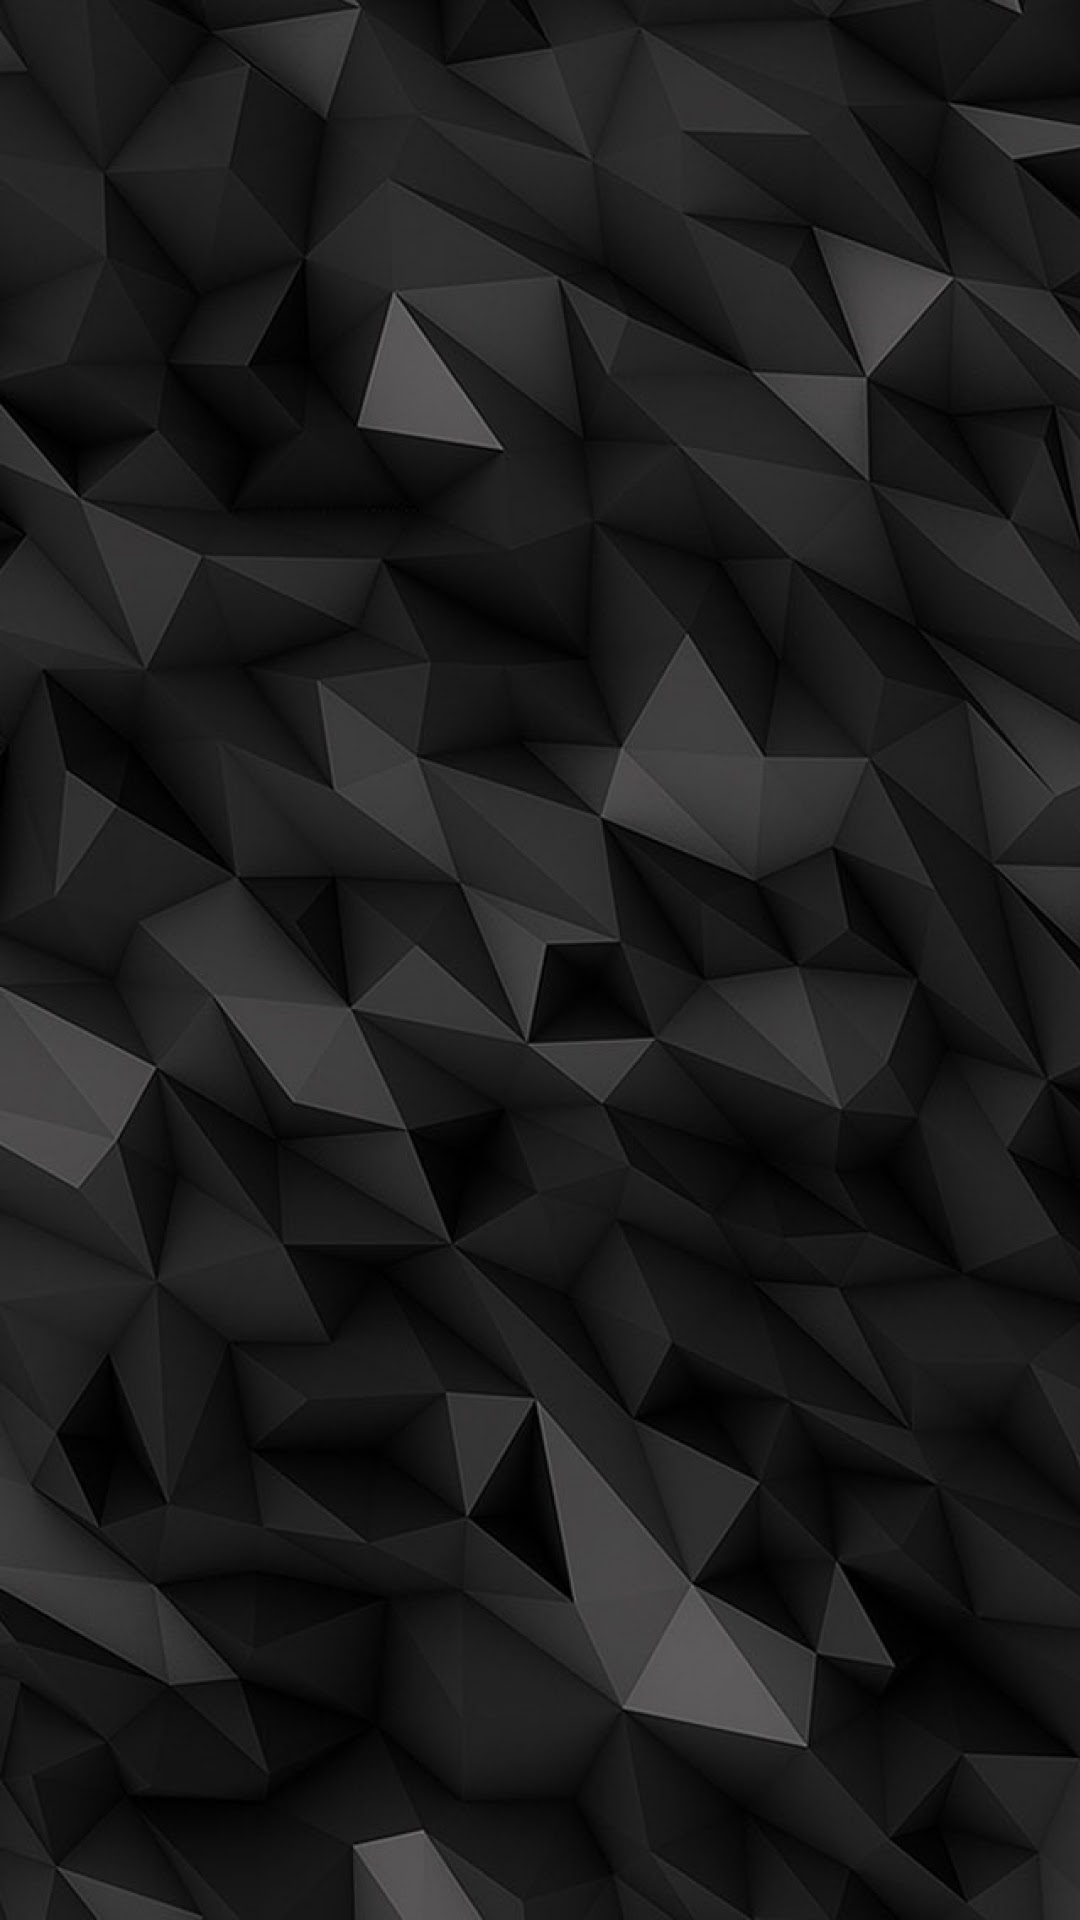 Galaxy note hd wallpapers 3d dark abstract polygons galaxy note hd wallpaper - 3d wallpaper for note 8 ...